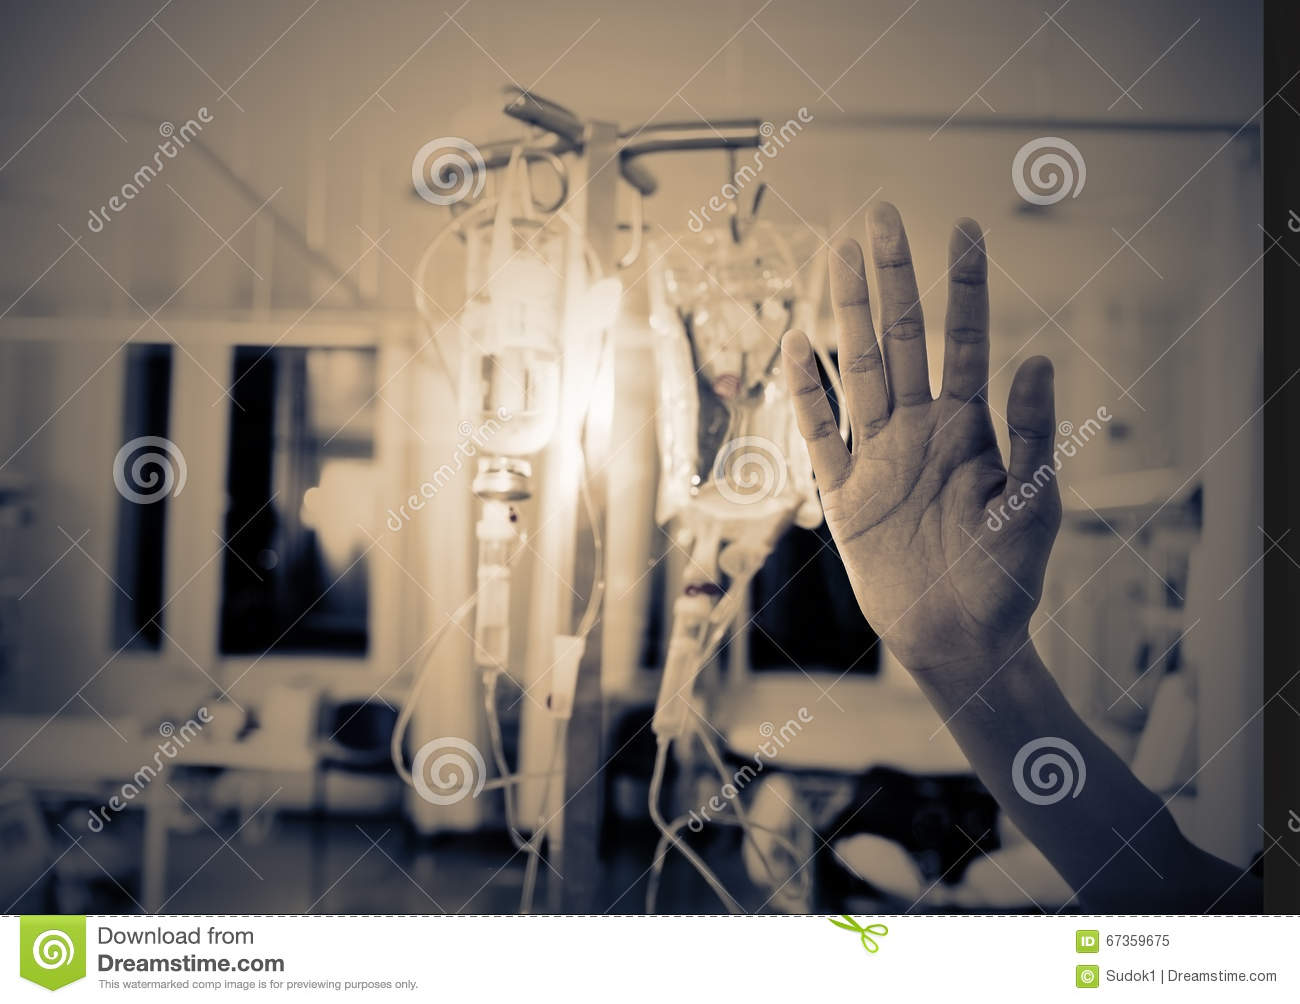 Palm pressed to the glass, the concept of compulsory isolation o